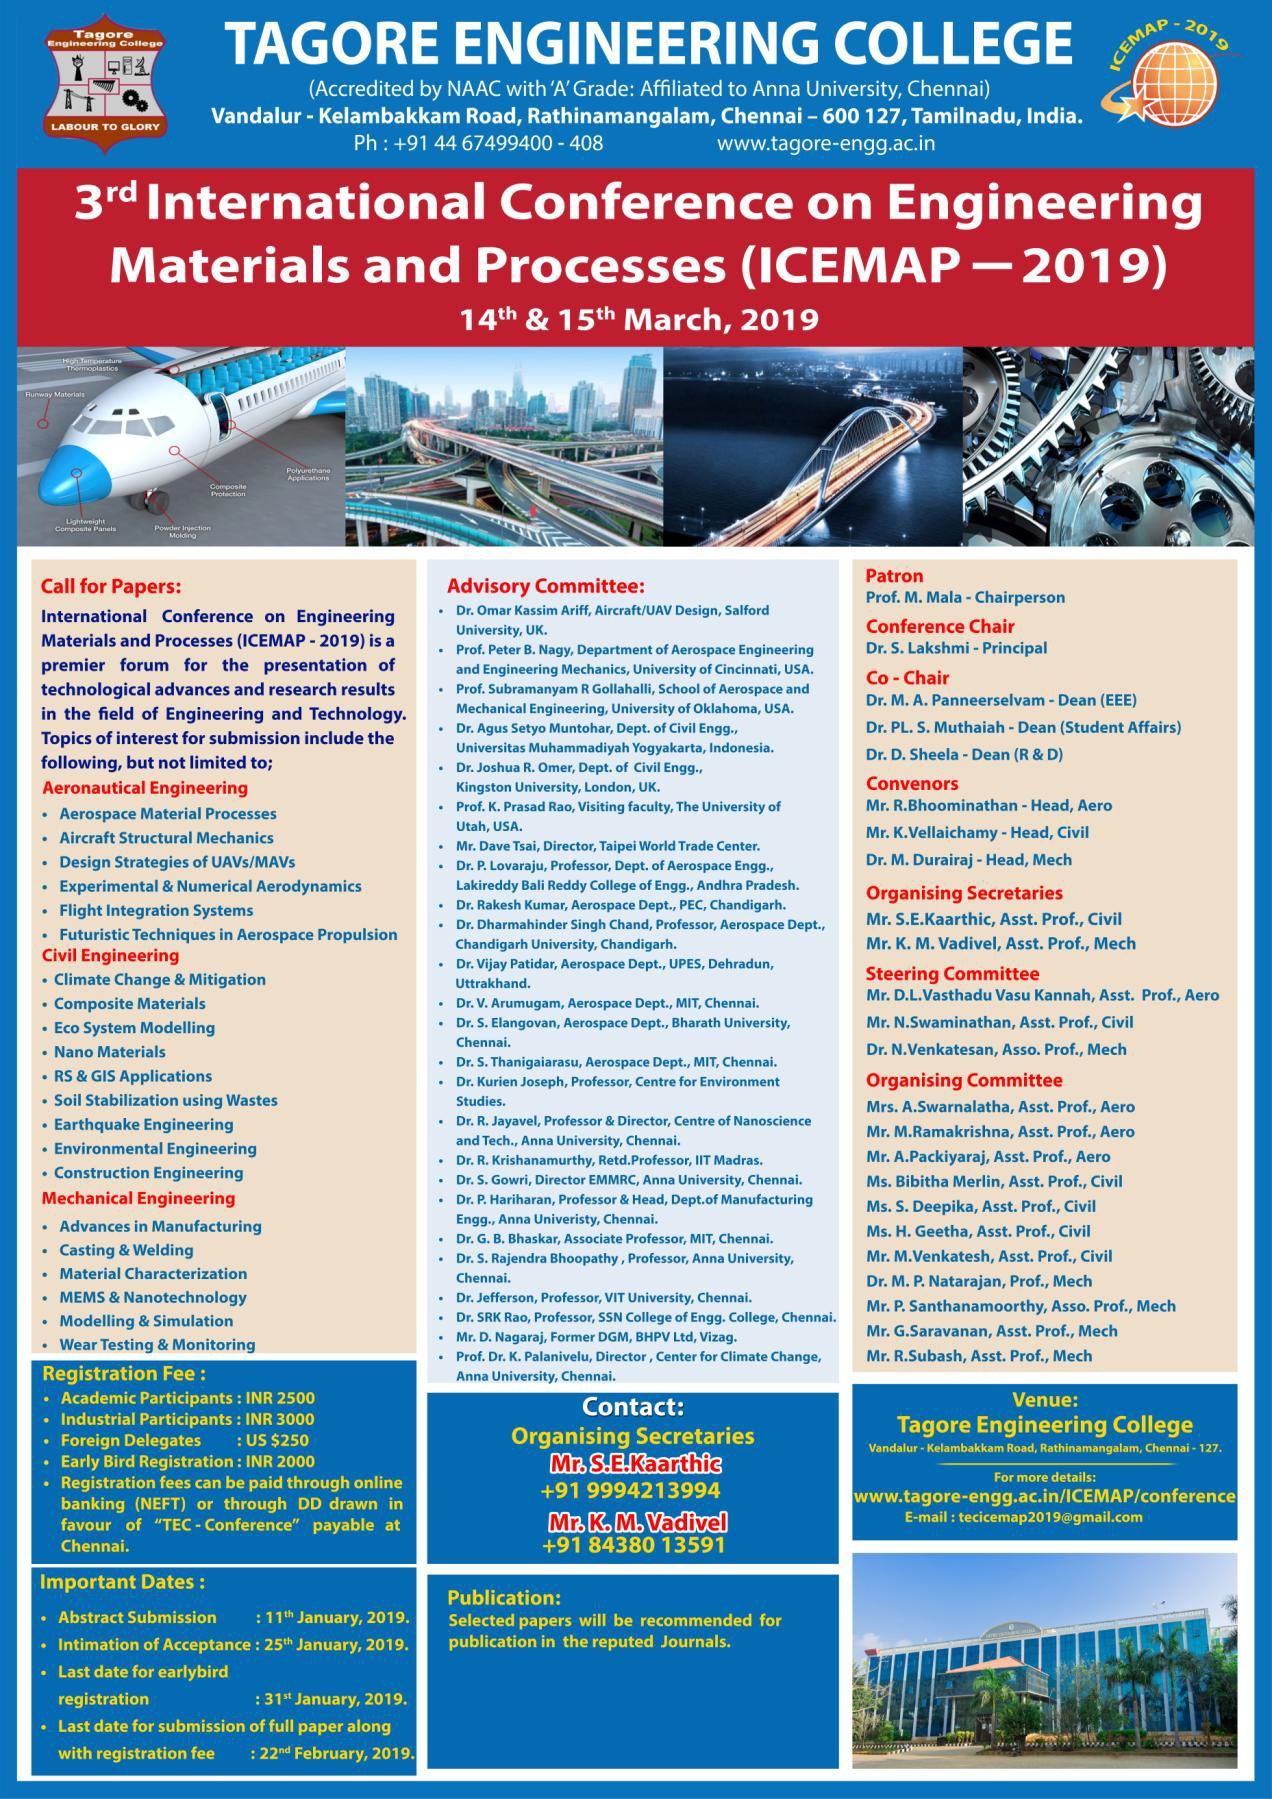 ICEMAP 2019 International Conference on Engineering Materials and Processes